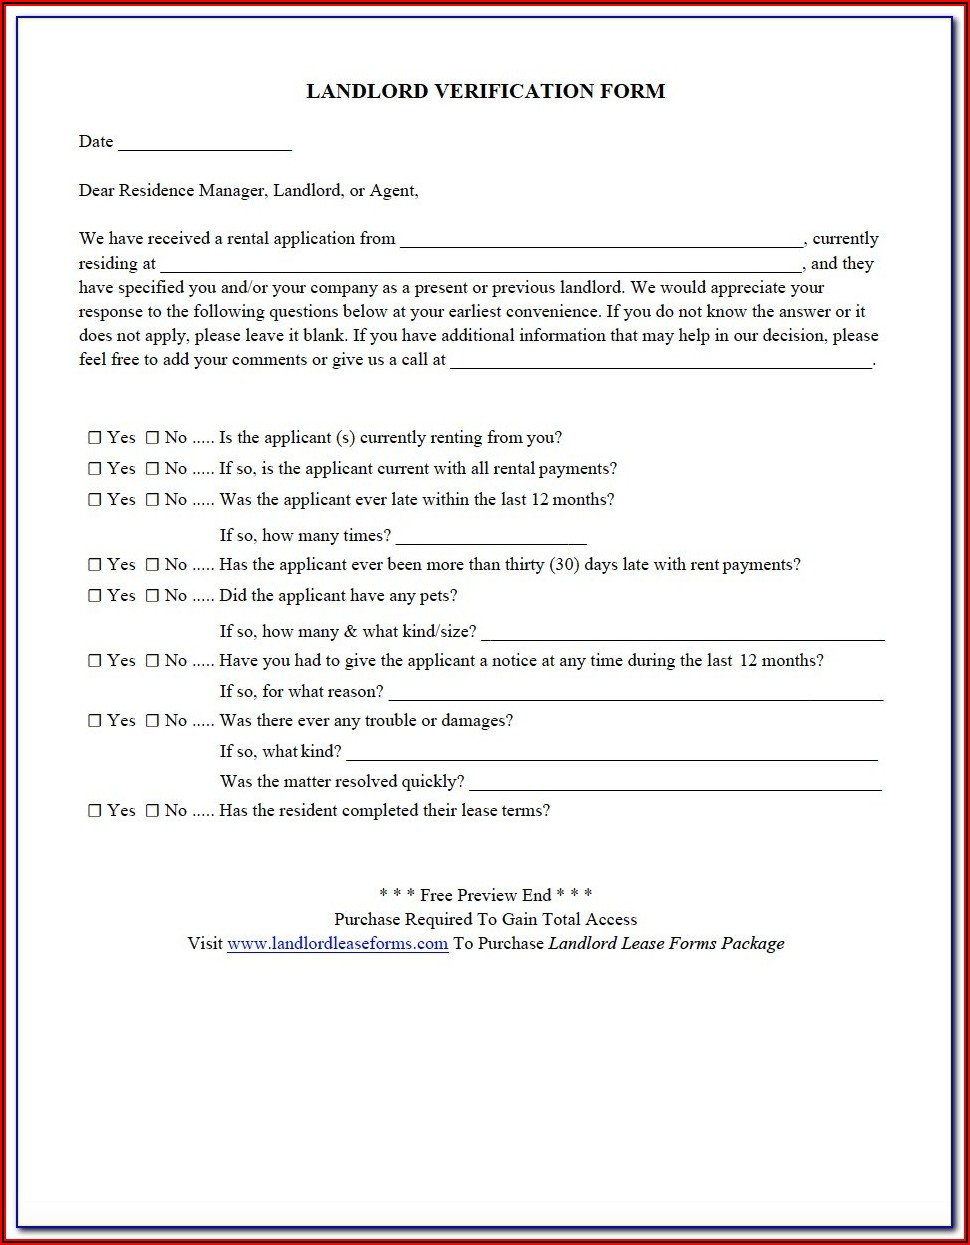 Landlord Tenancy Forms